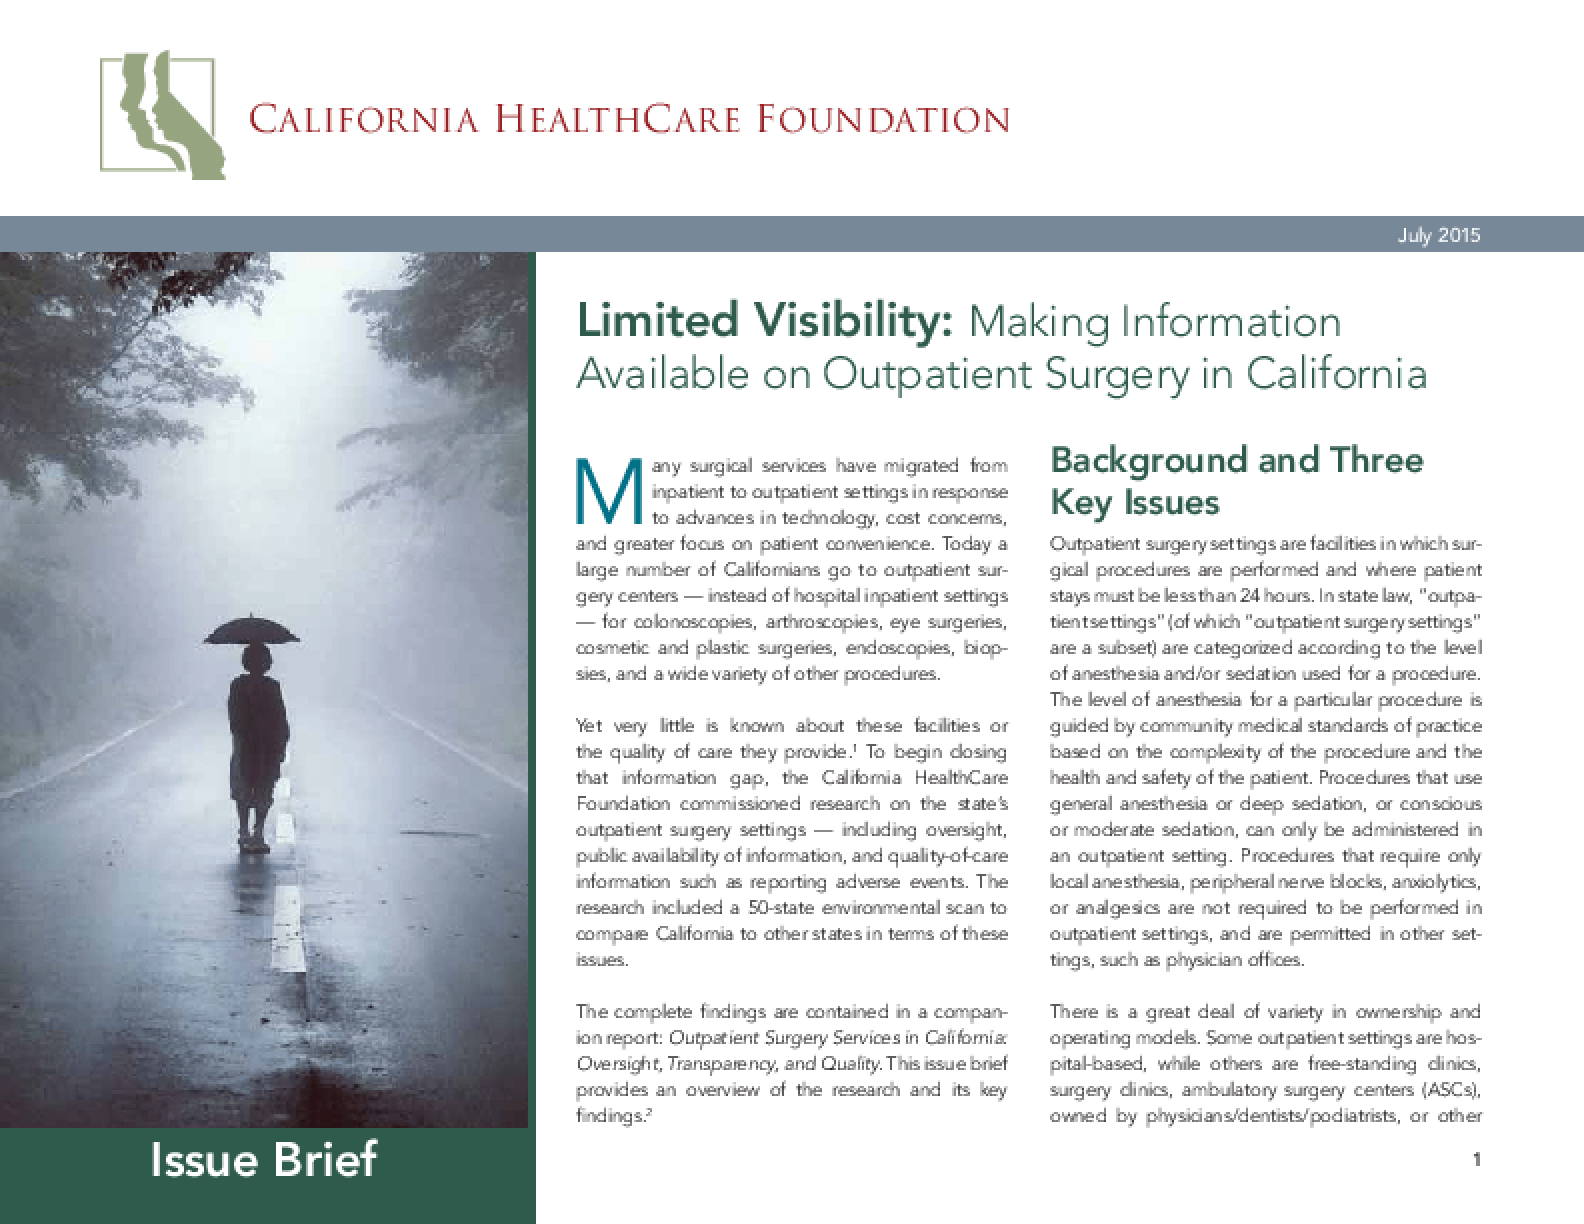 Limited Visibility: Making Information Available On Outpatient Surgery In California